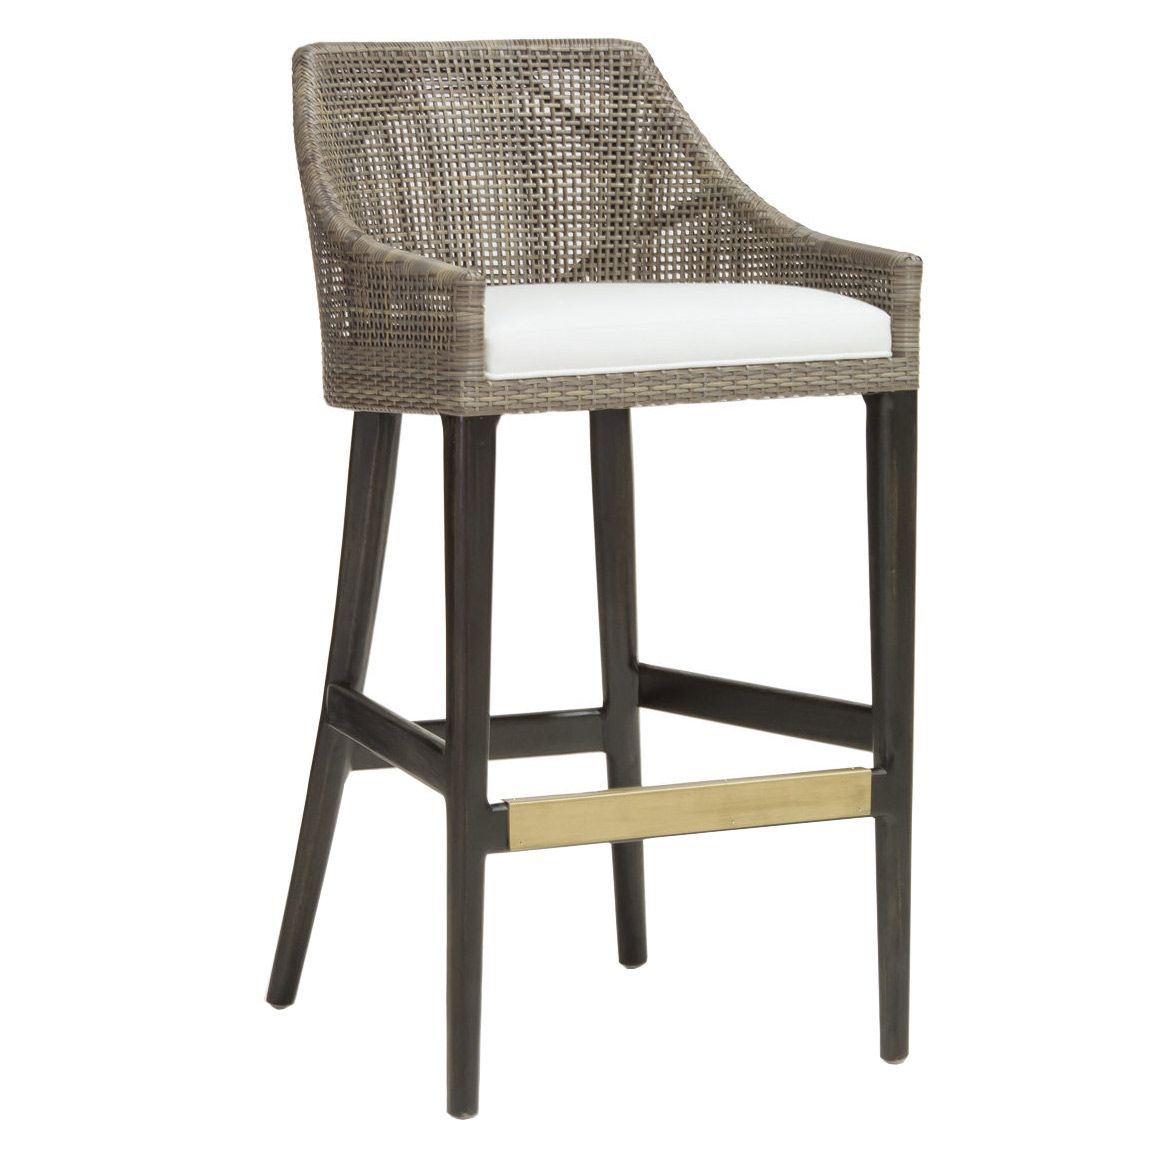 The Palecek Vincent counter bar stool. Minimum purchase of 2; Fabric options available;  sc 1 st  Pinterest & The Palecek Vincent counter bar stool. Minimum purchase of 2 ... islam-shia.org